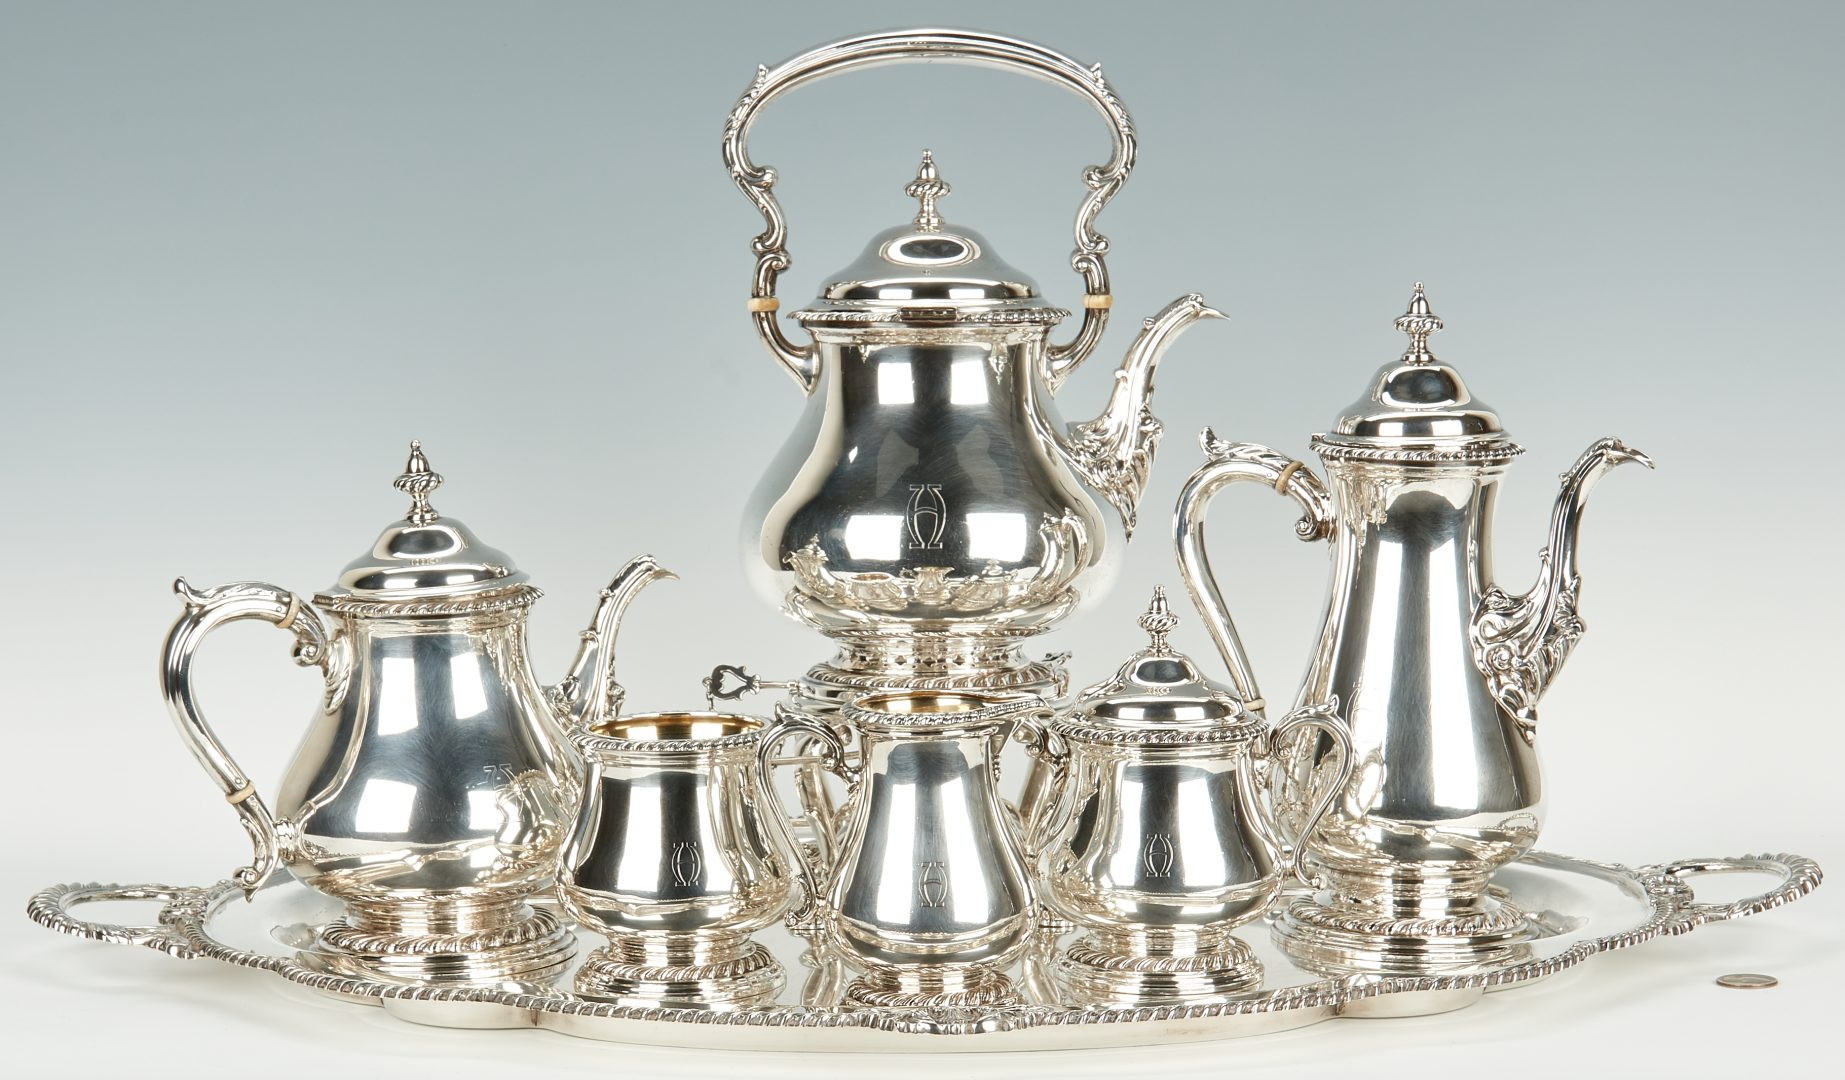 Sterling silver tea service with retailer marks for Shreve & Company